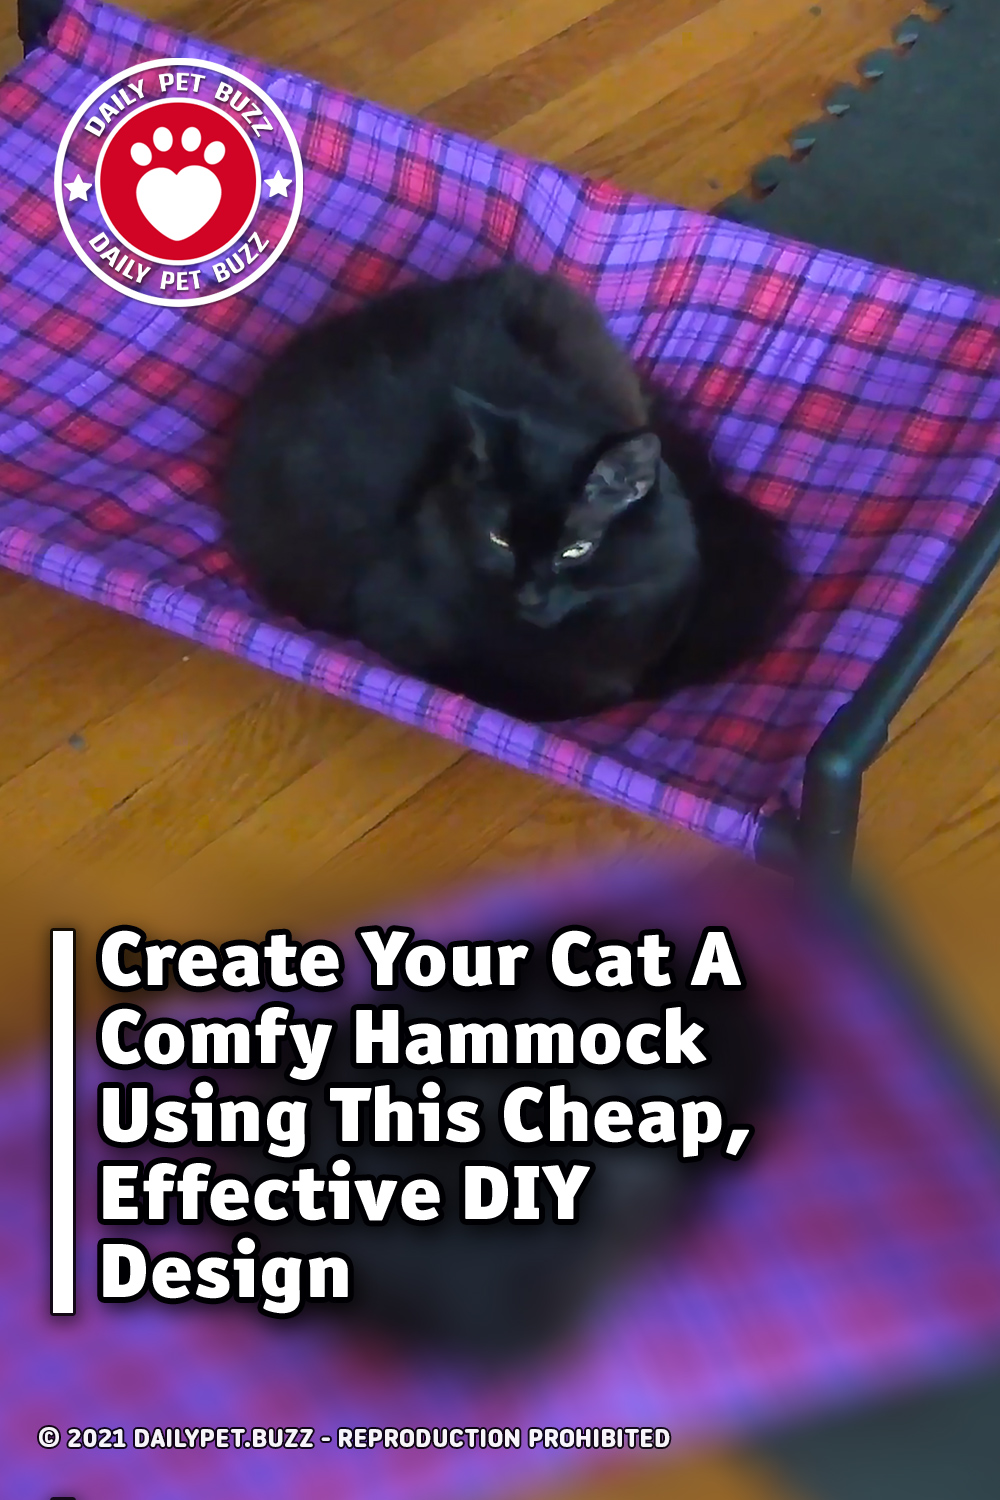 Create Your Cat A Comfy Hammock Using This Cheap, Effective DIY Design